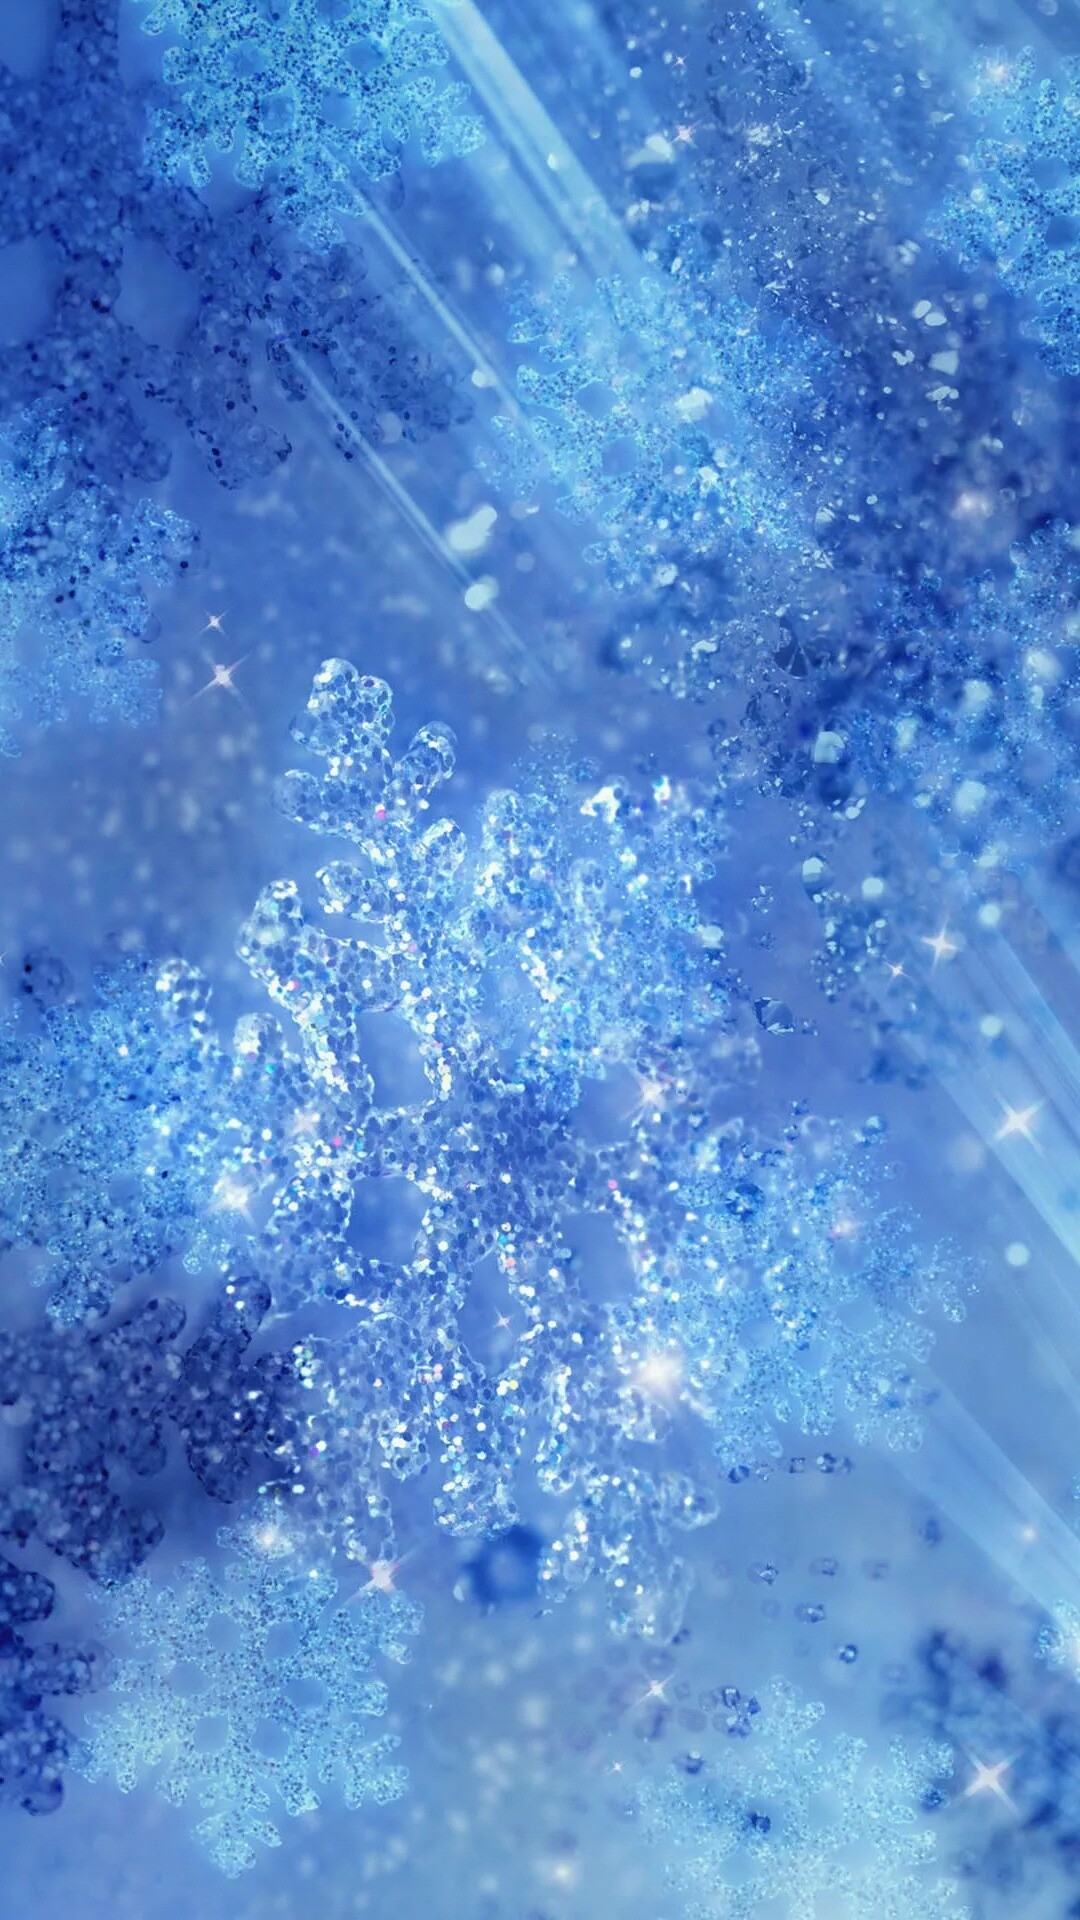 Tap to see more beautiful winter frozen snowflakes iPhone wallpapers,  lockscreen